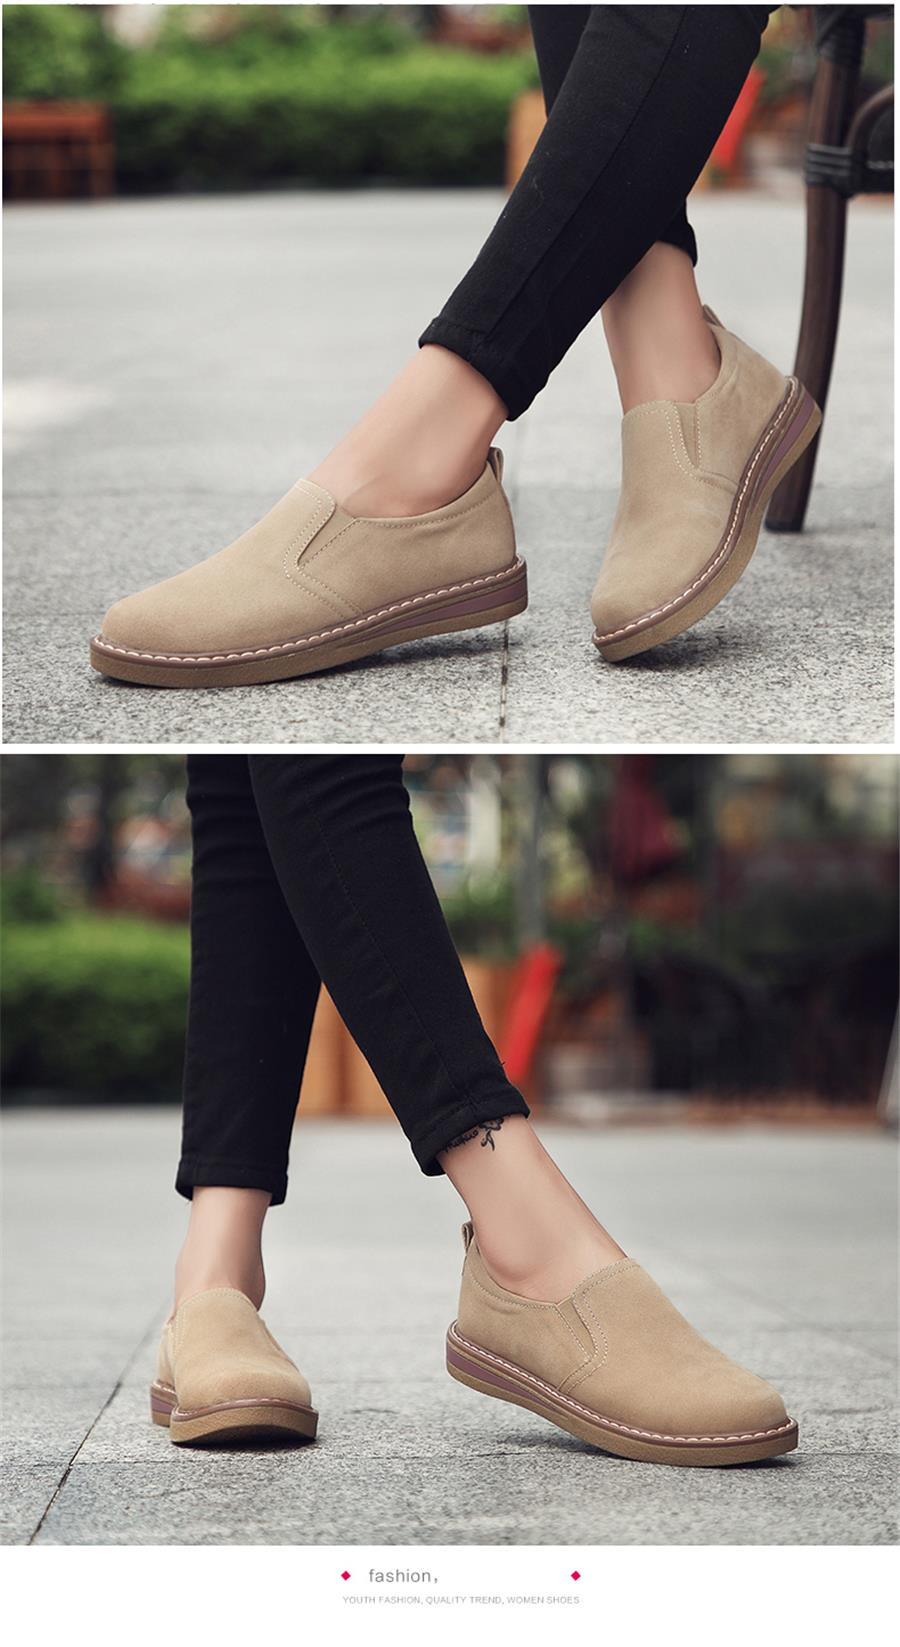 STS BRAND 2019 New Spring Women Flats Sneakers Suede Leather Round Toe Shoes Casual Shoes Women Slip On Flat Loafers Fazz Oxford (11)